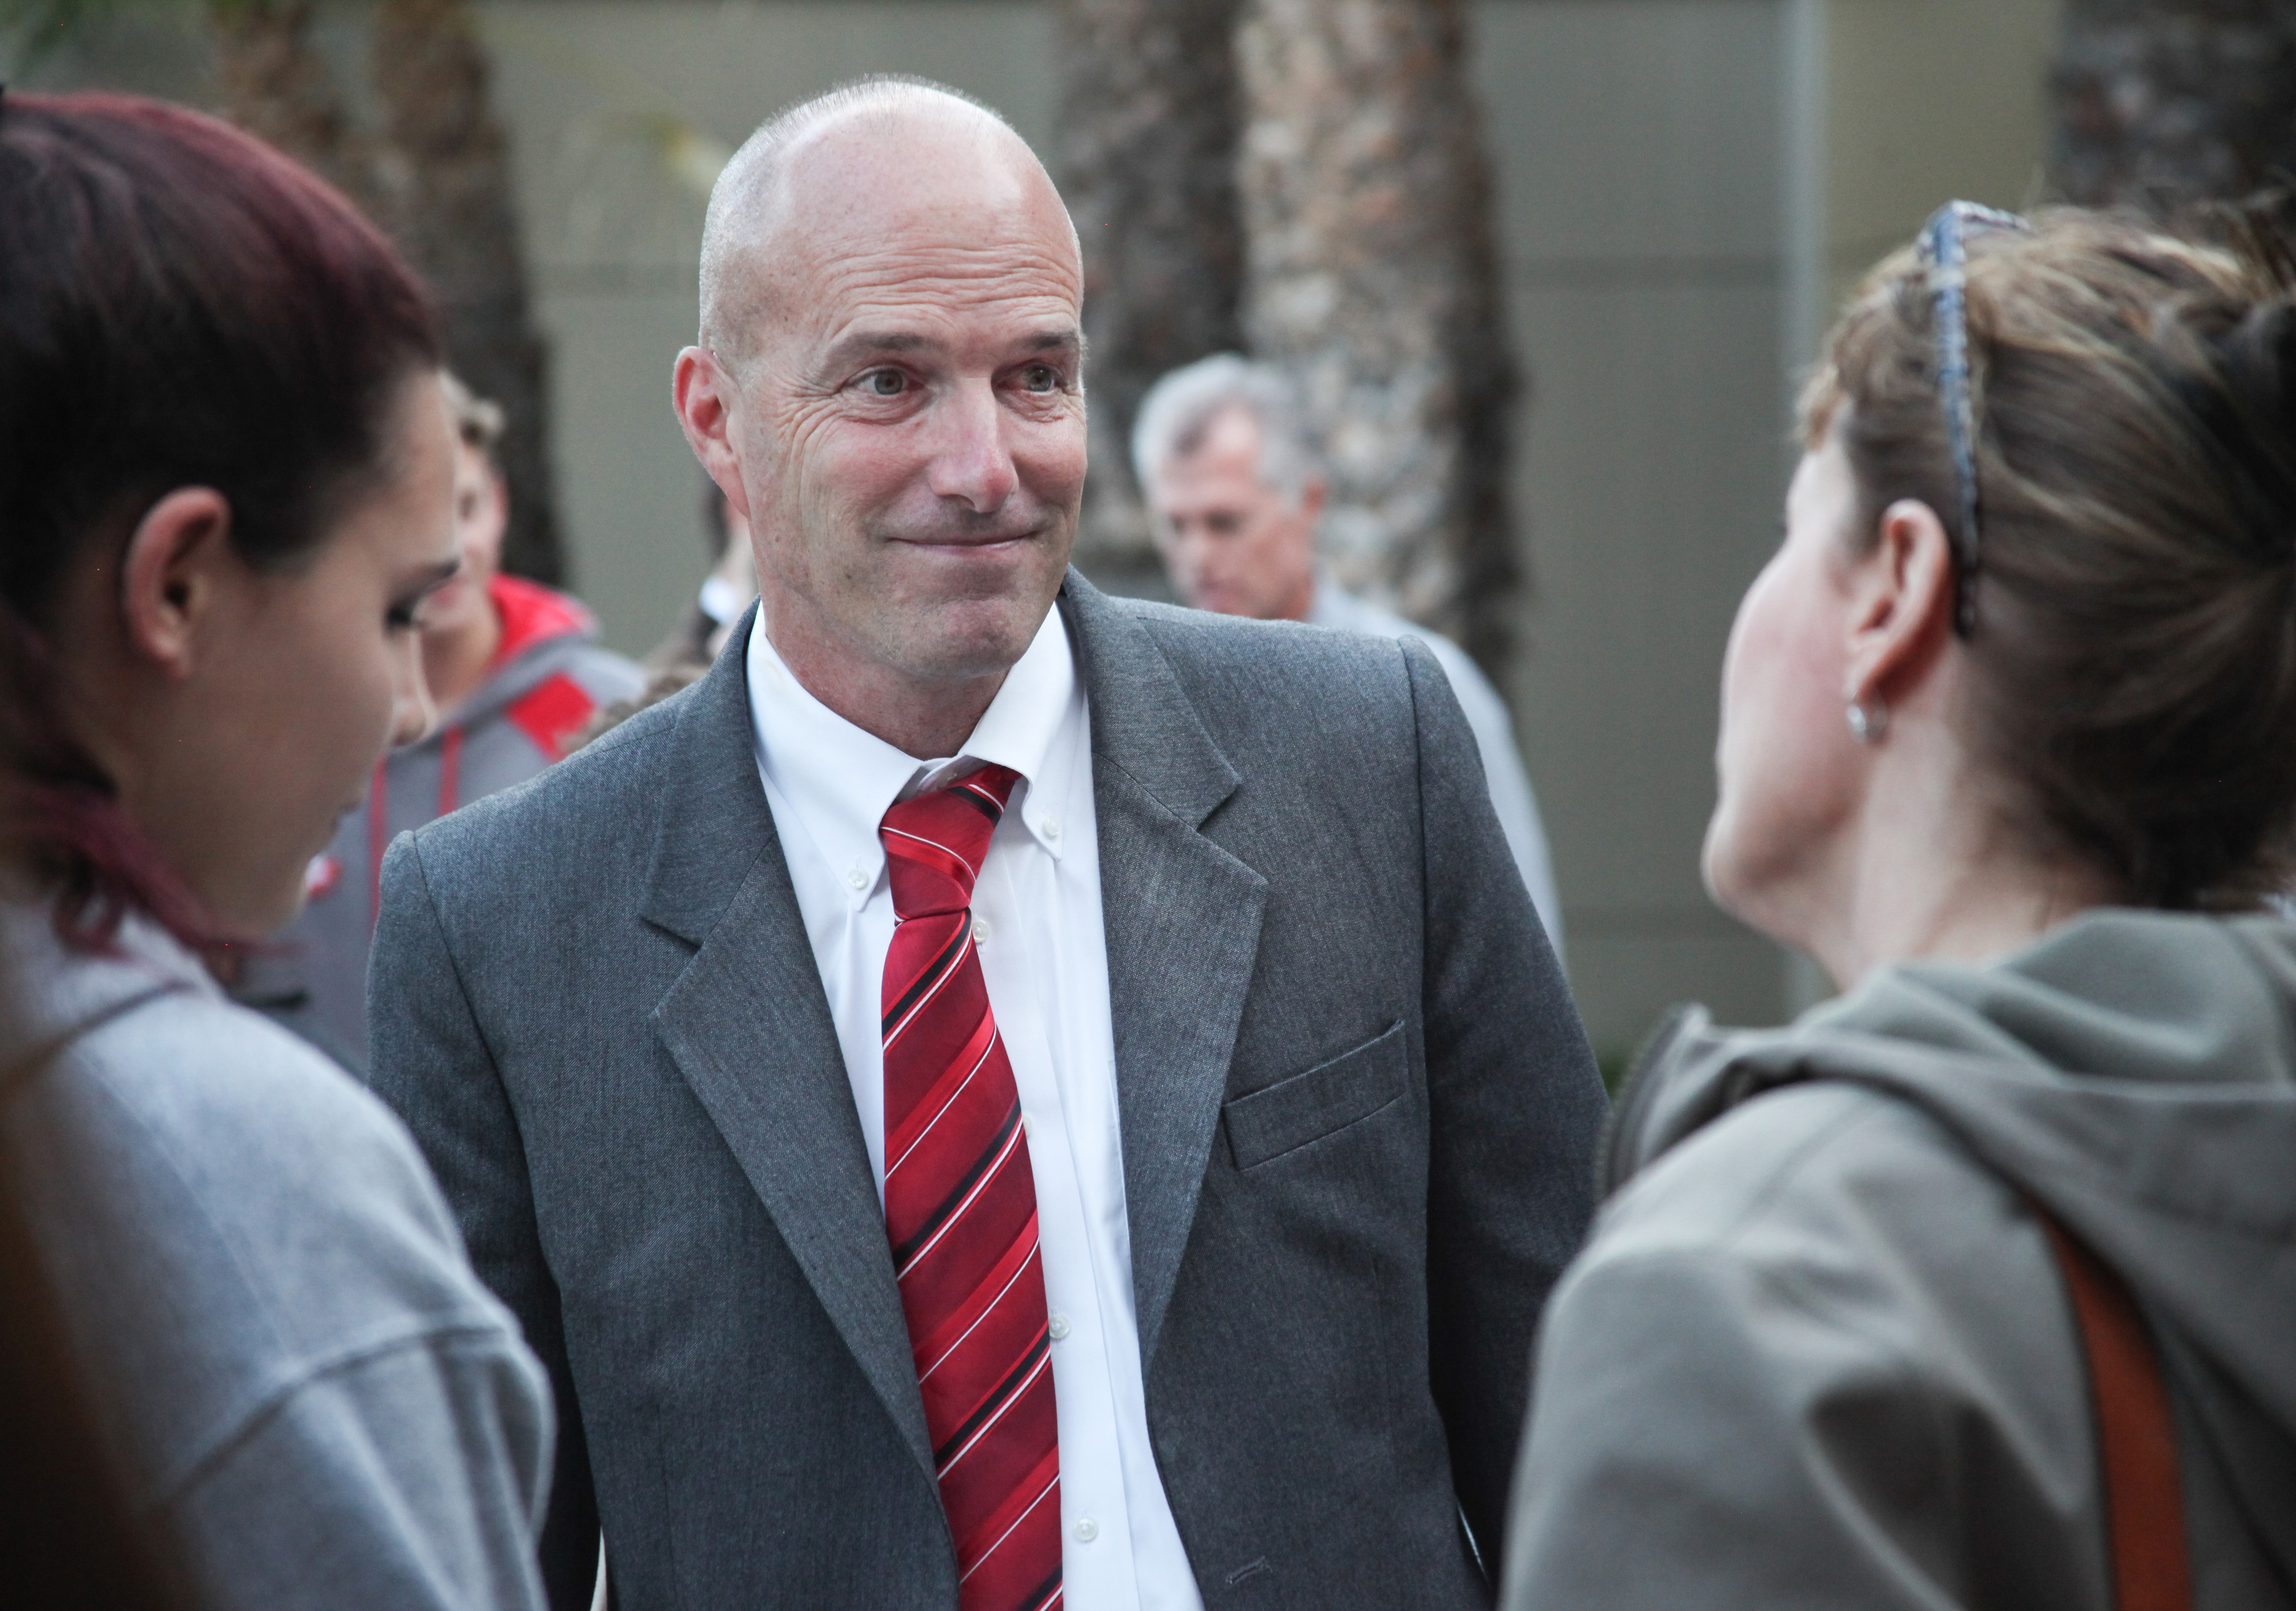 Principal Michael Halt speaks with people following the June 4 CUSD meeting. Halt was reinstated as a district principal, but was not offered his former position at San Clemente High School. On Thursday, San Clemente Times received a letter from the district that stated Halt had refused employment offers from CUSD. Photo: Allison Jarrell